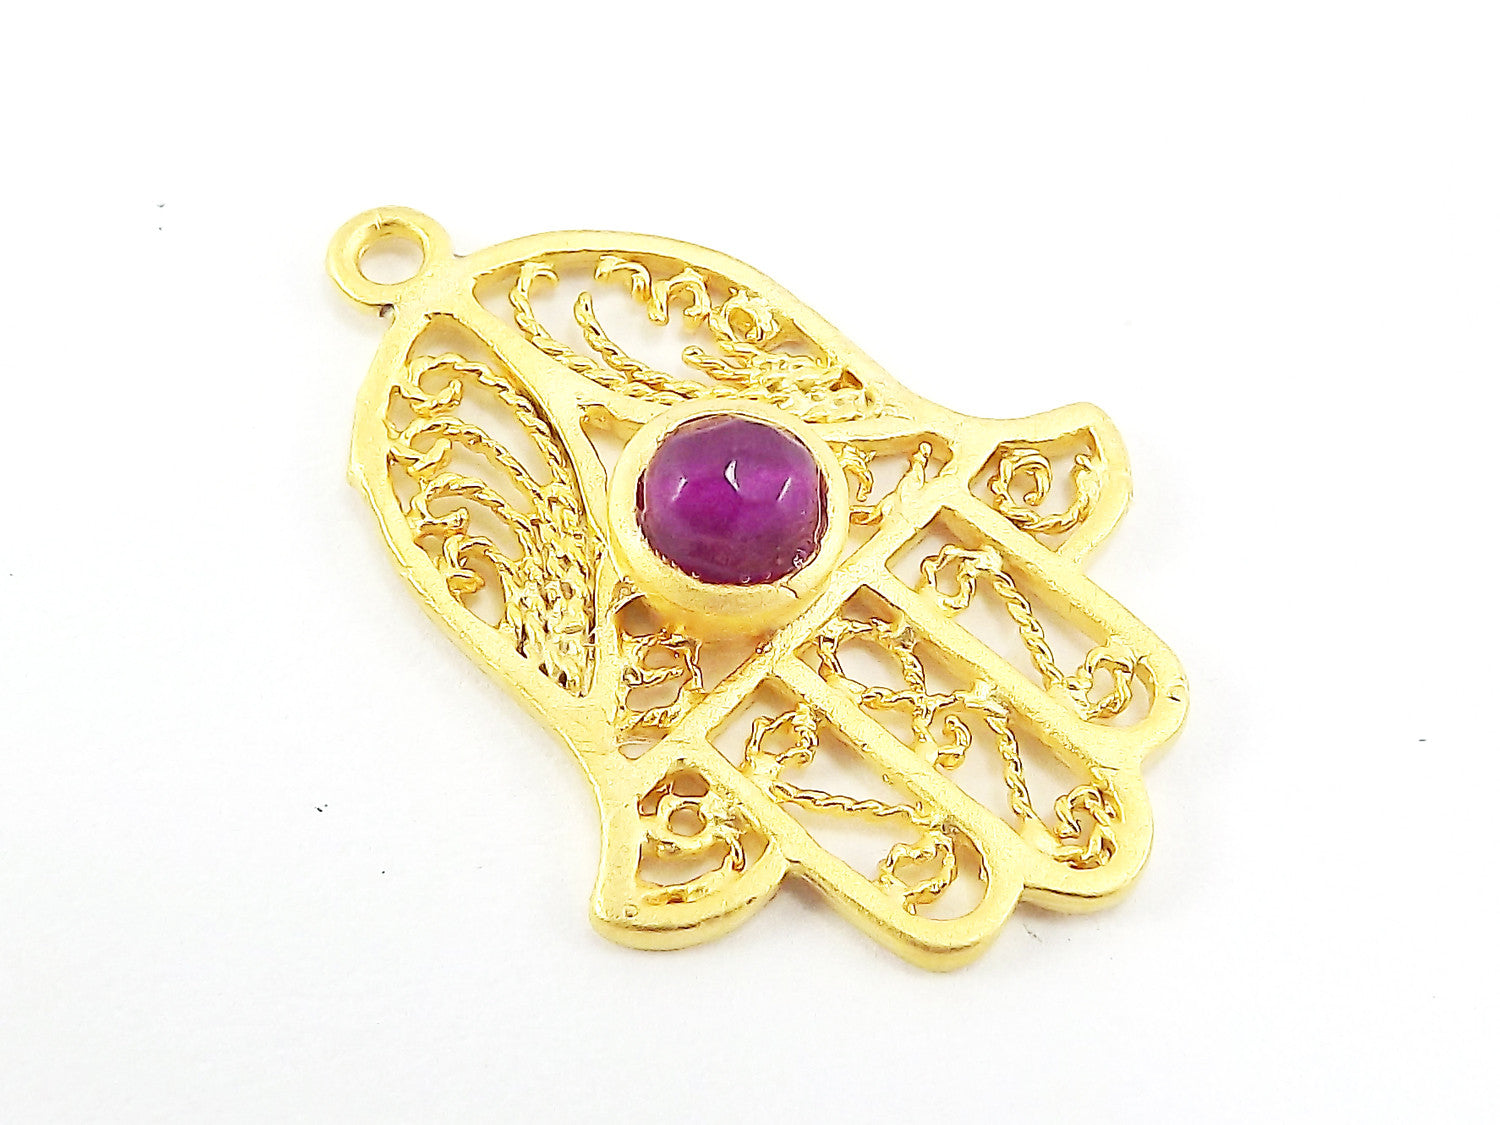 Filigree Hand of Fatima Hamsa Pendant Charm with Violet Purple Facet Cut Jade Accent- 22k Matte Gold Plated